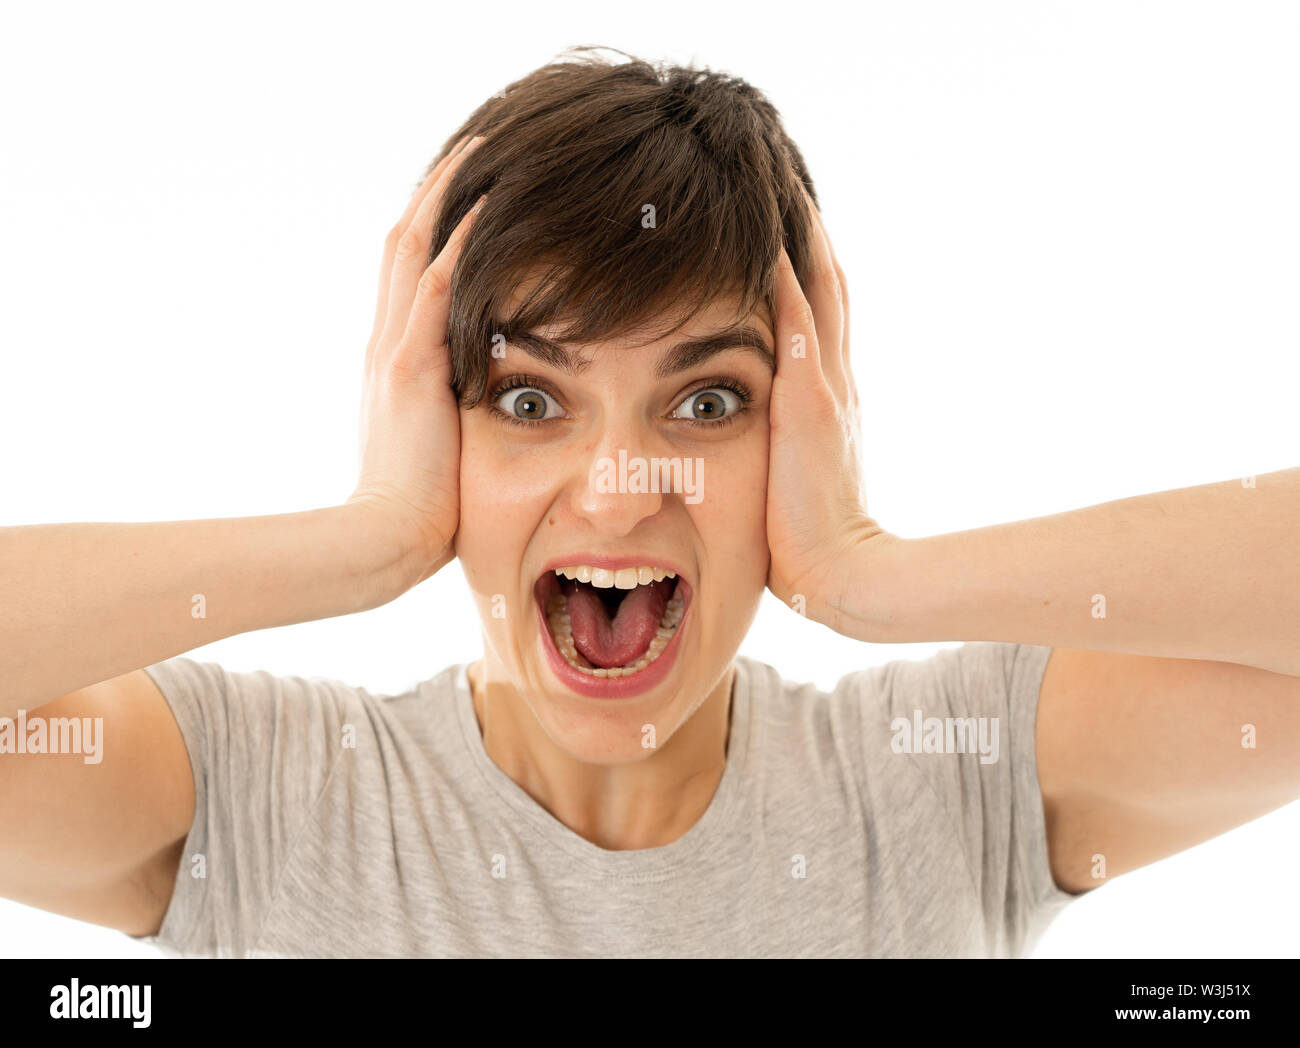 Portrait of beautiful shocked woman wining the lottery or having great success with surprised and happy Face and gestures in Facial Expression, Human - Stock Image